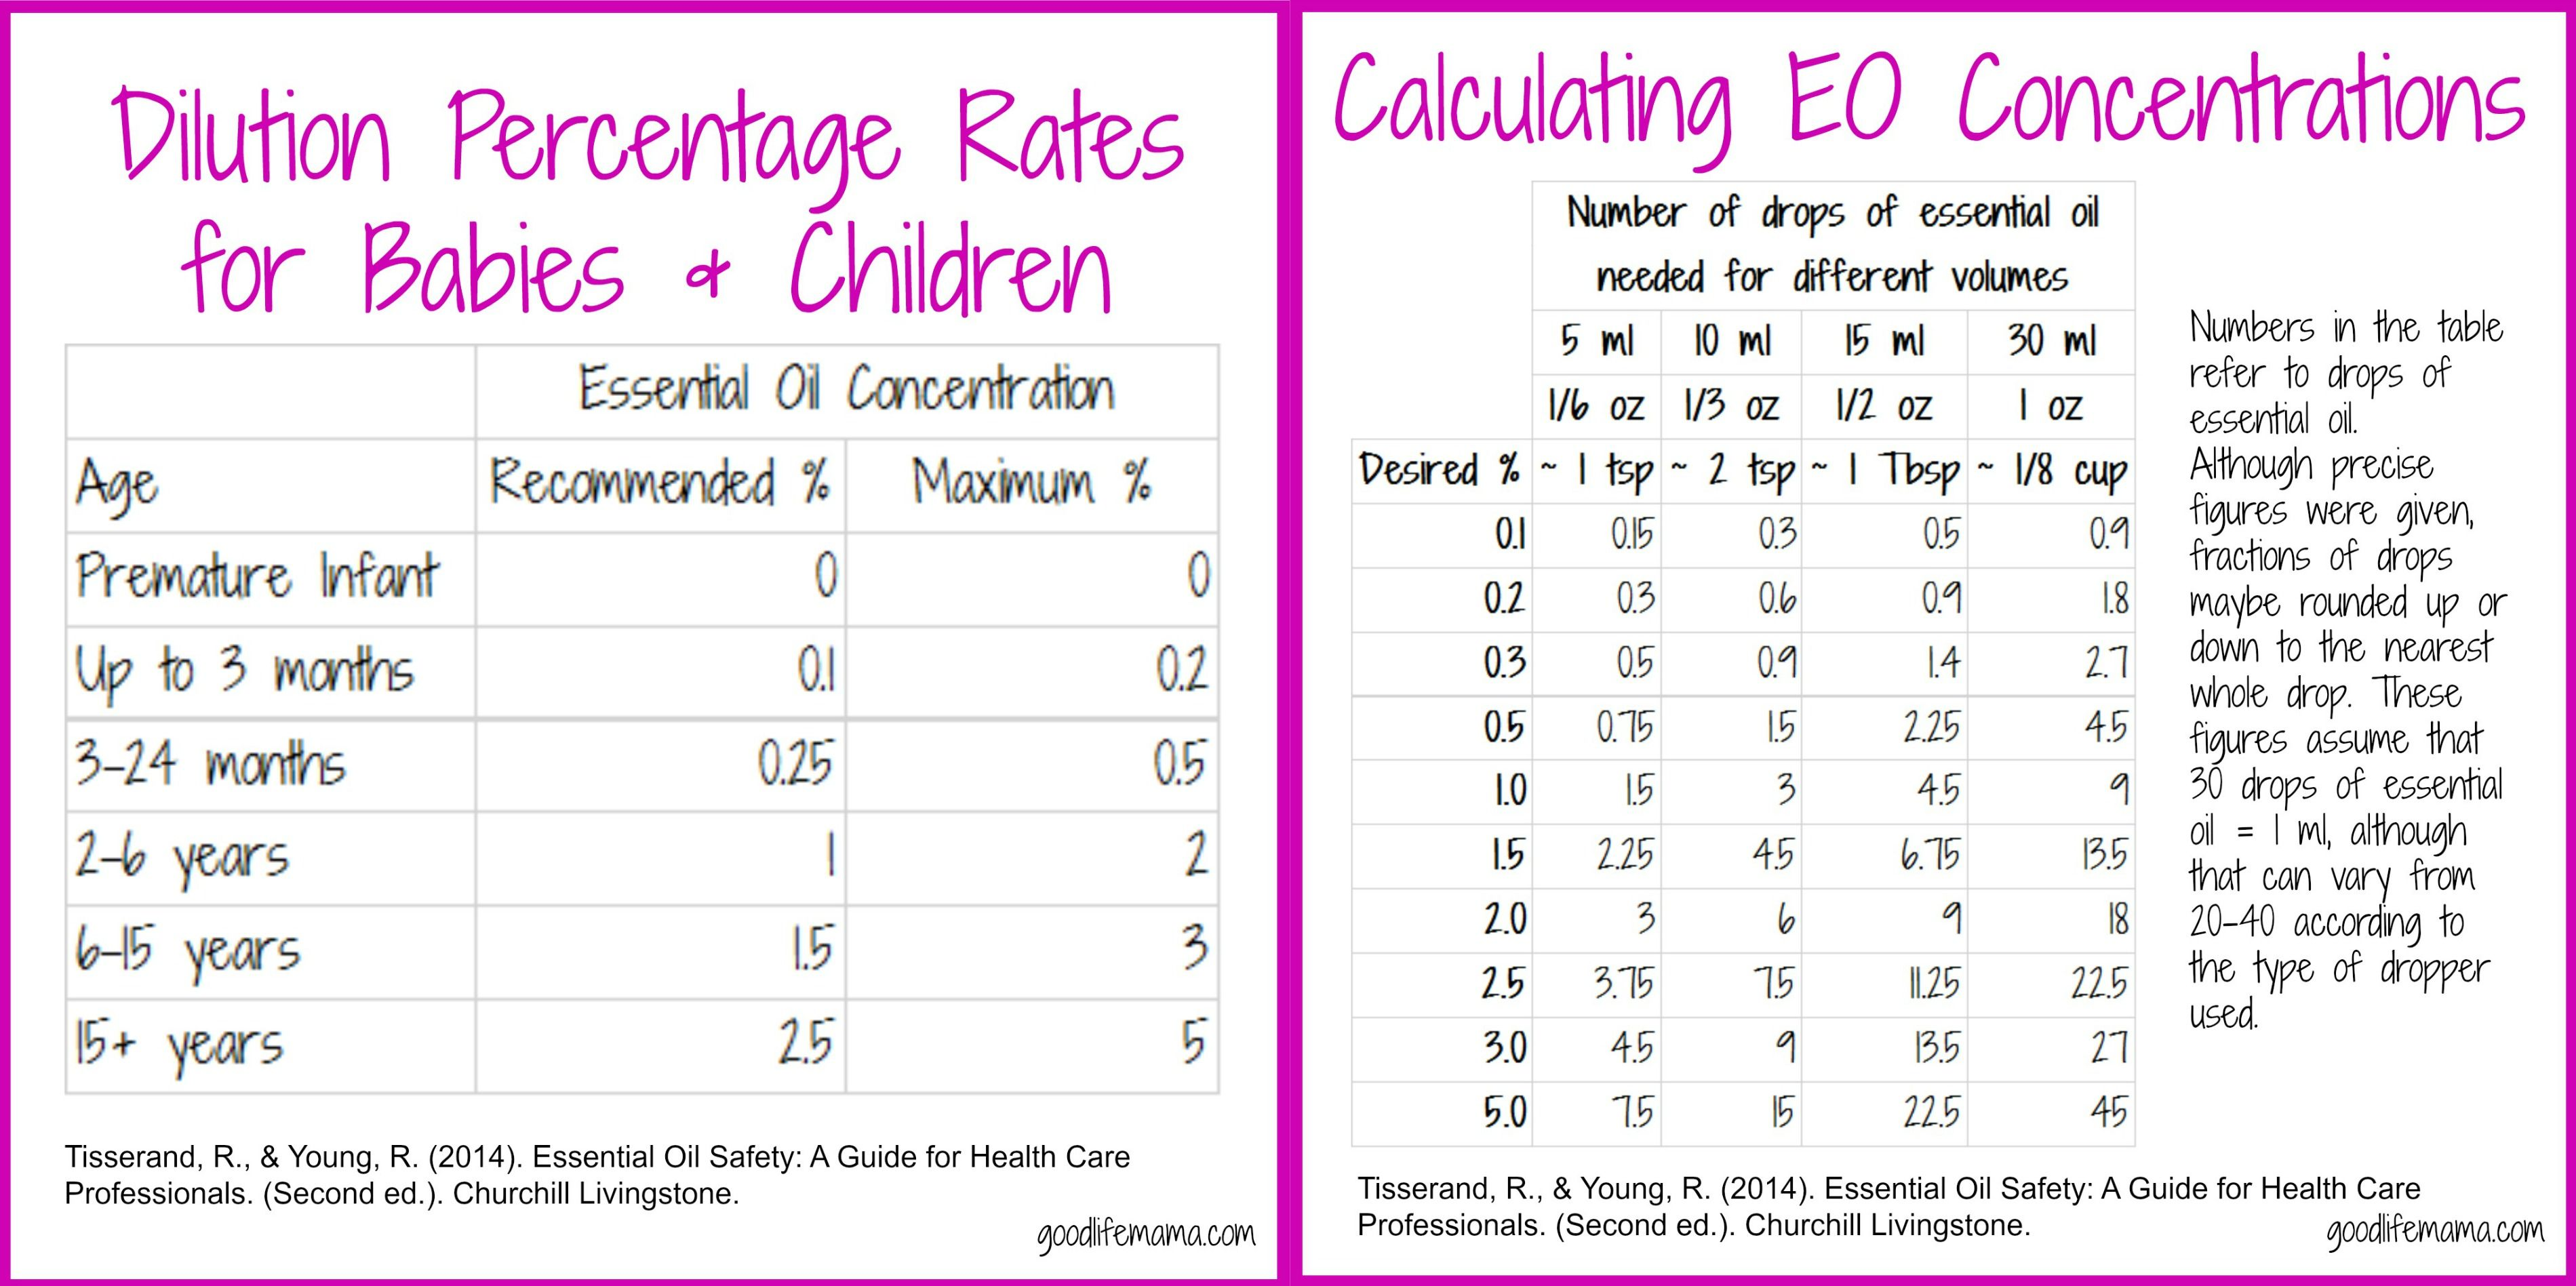 Thieves Oil Dilution Dilution Rates And Calculating Concentrations For Babies